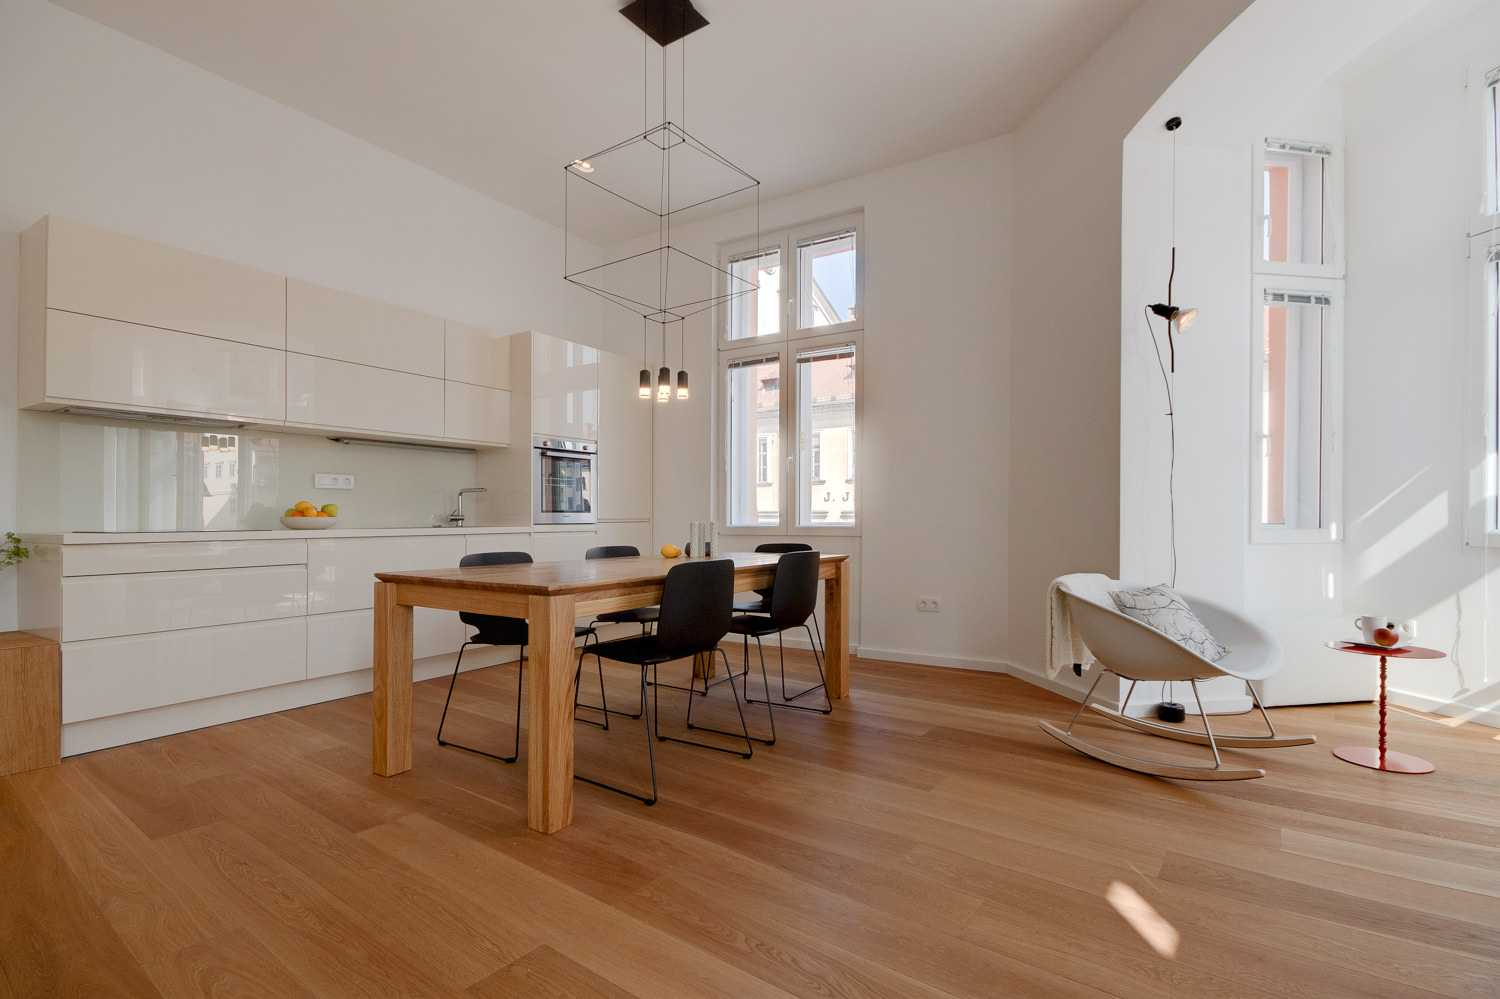 This beautiful hardwood dining table was custom-made for the apartment.